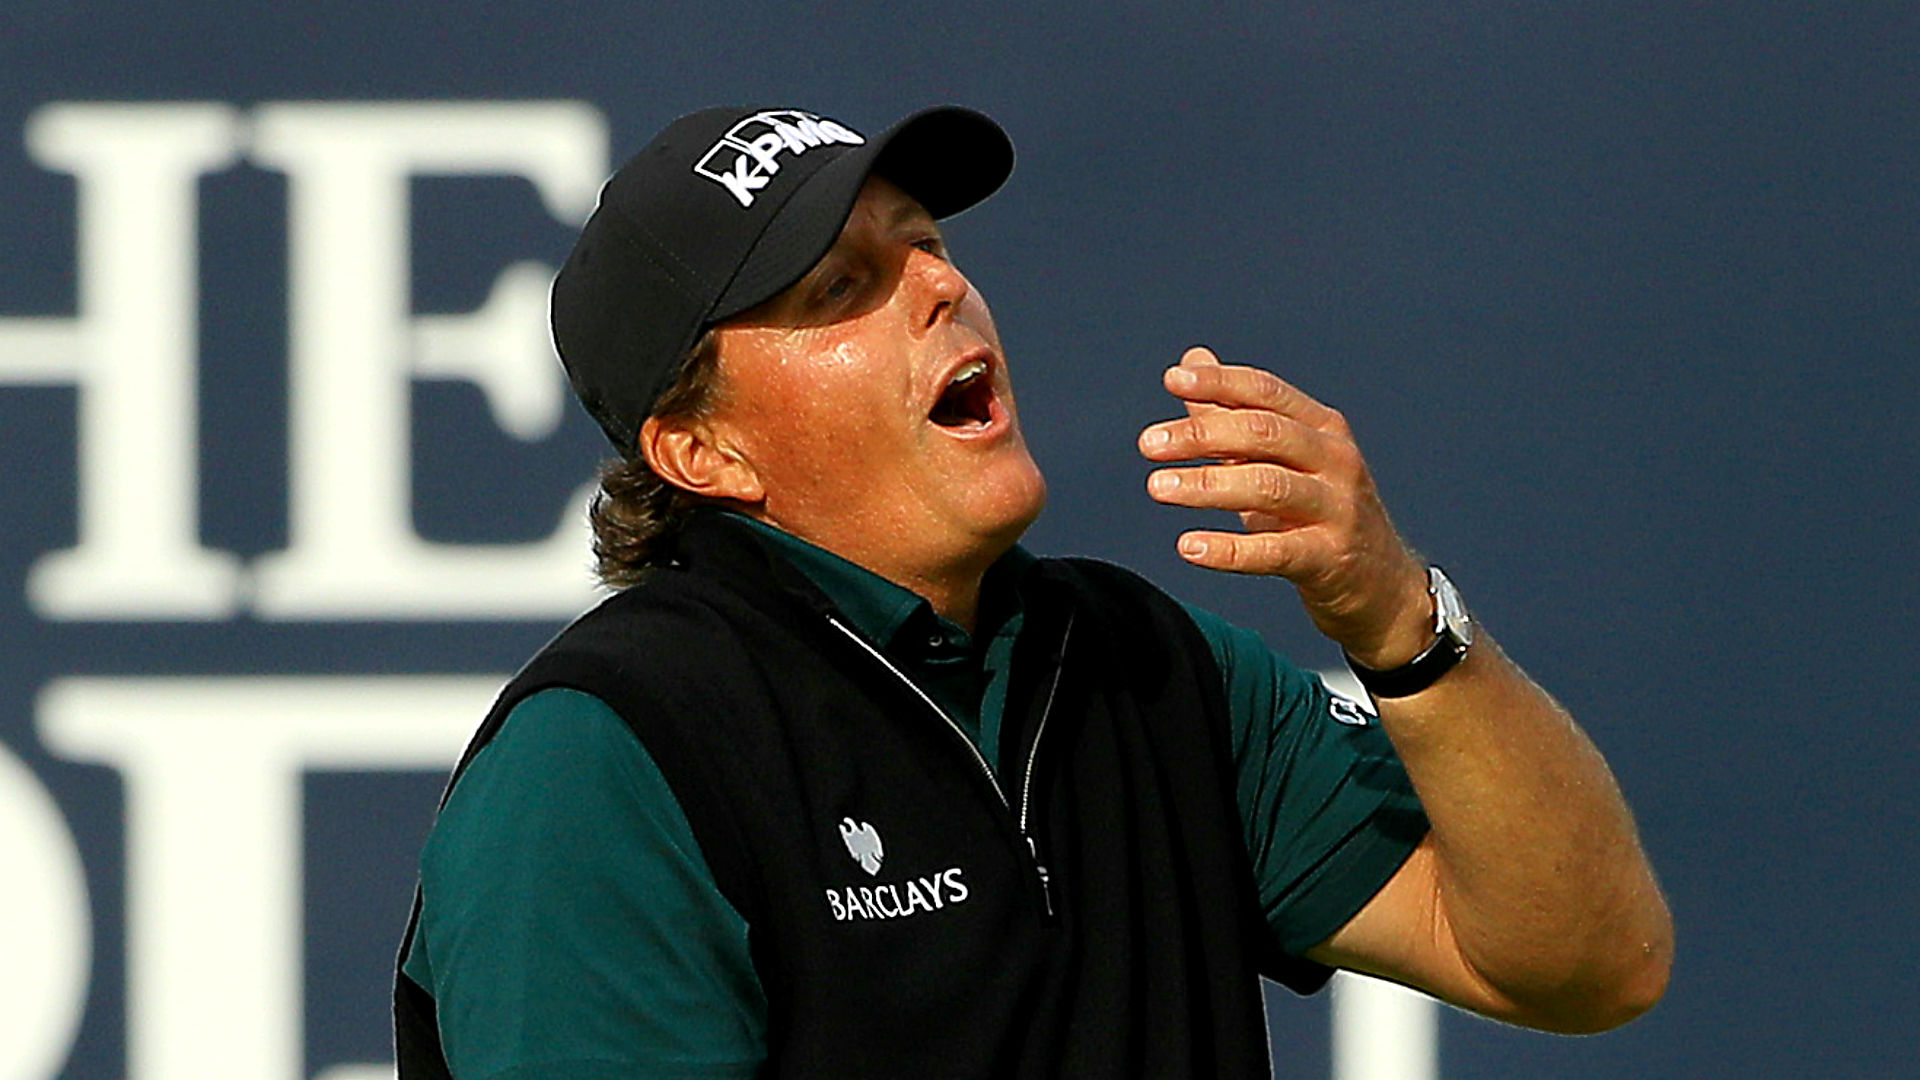 Useful question is phil mickelson an ass think